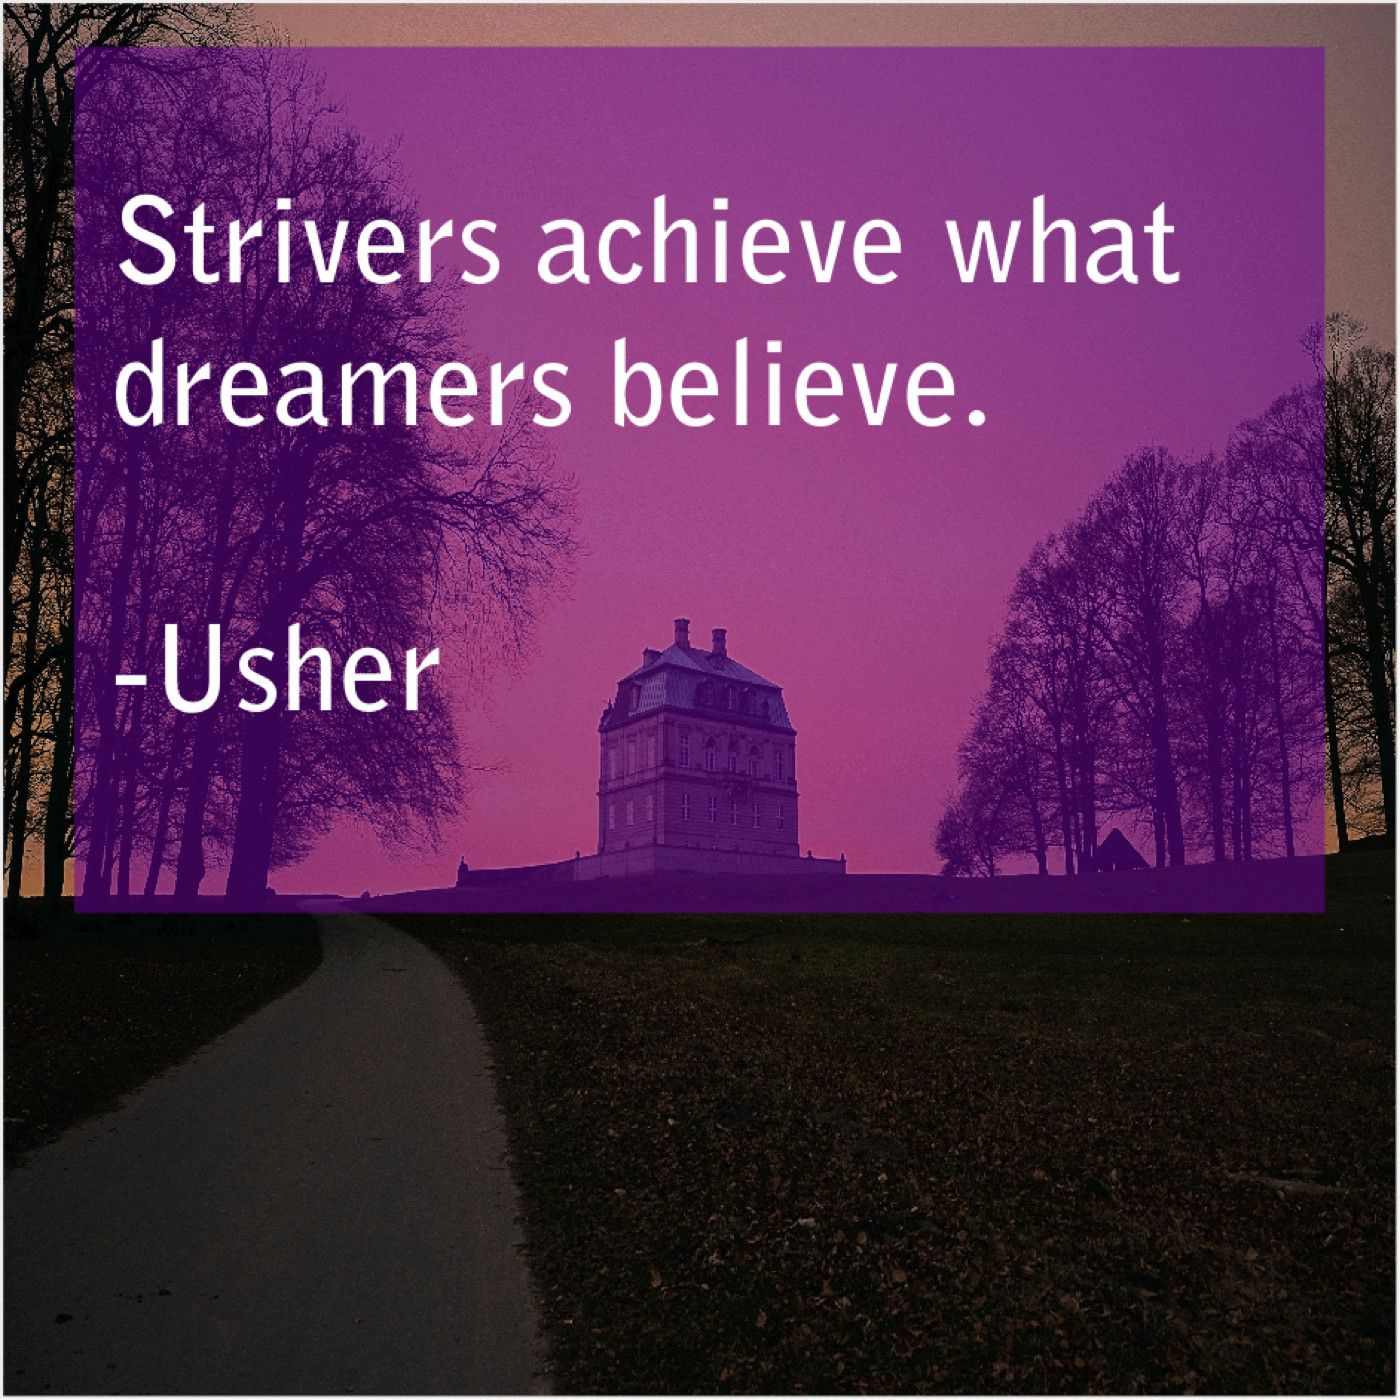 Usher Strivers Achieve What Dreamers Believe Http Bit Ly Ttfn1 In 2020 The Dreamers Caine Michael Tony Campolo